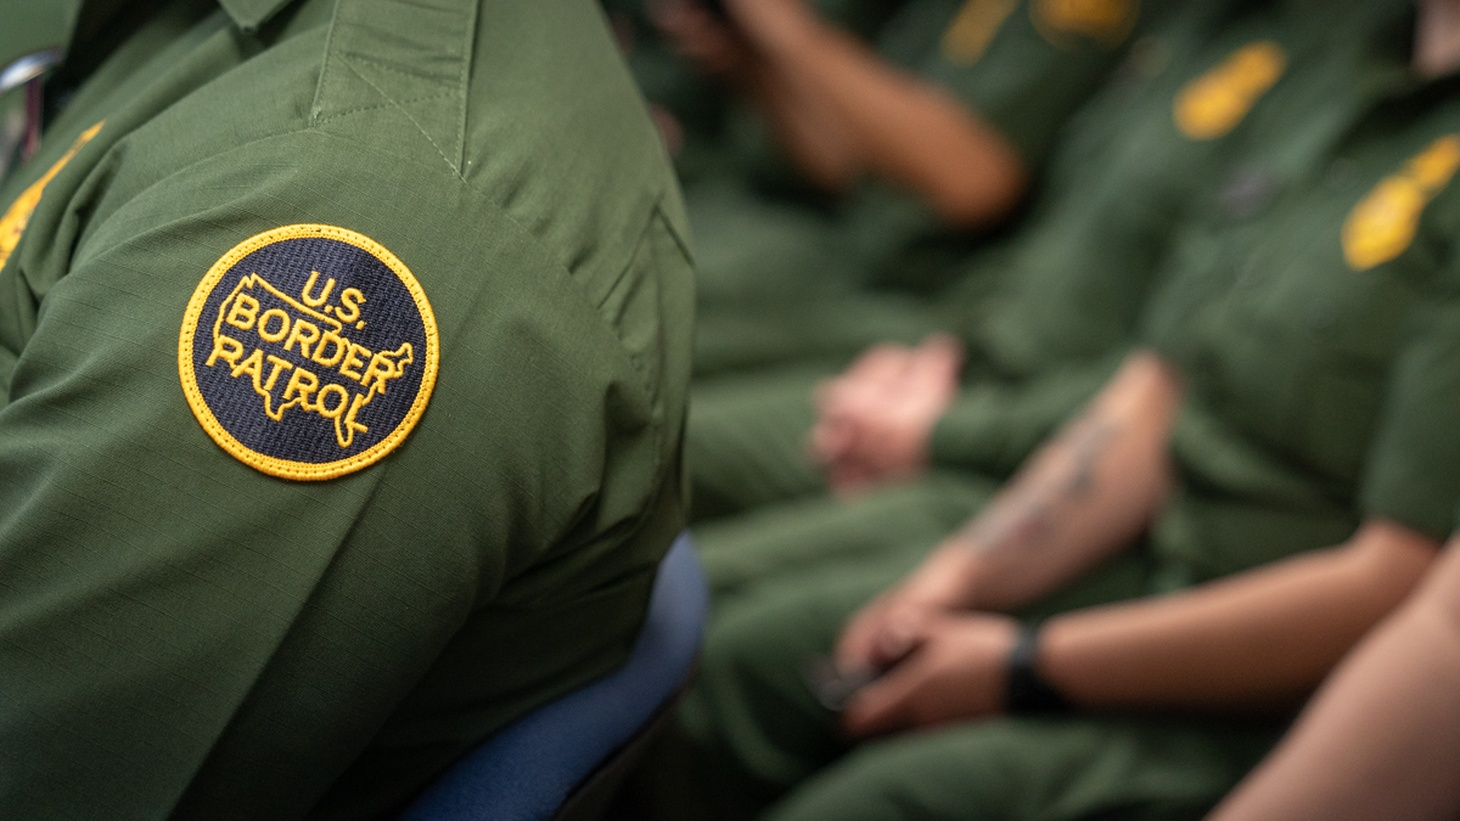 President Donald J. Trump participates in a roundtable discussion on immigration and border security at the U.S. Border Patrol Calexico Station Friday, April 5, 2019, in Calexico, Calif. (Official White House).